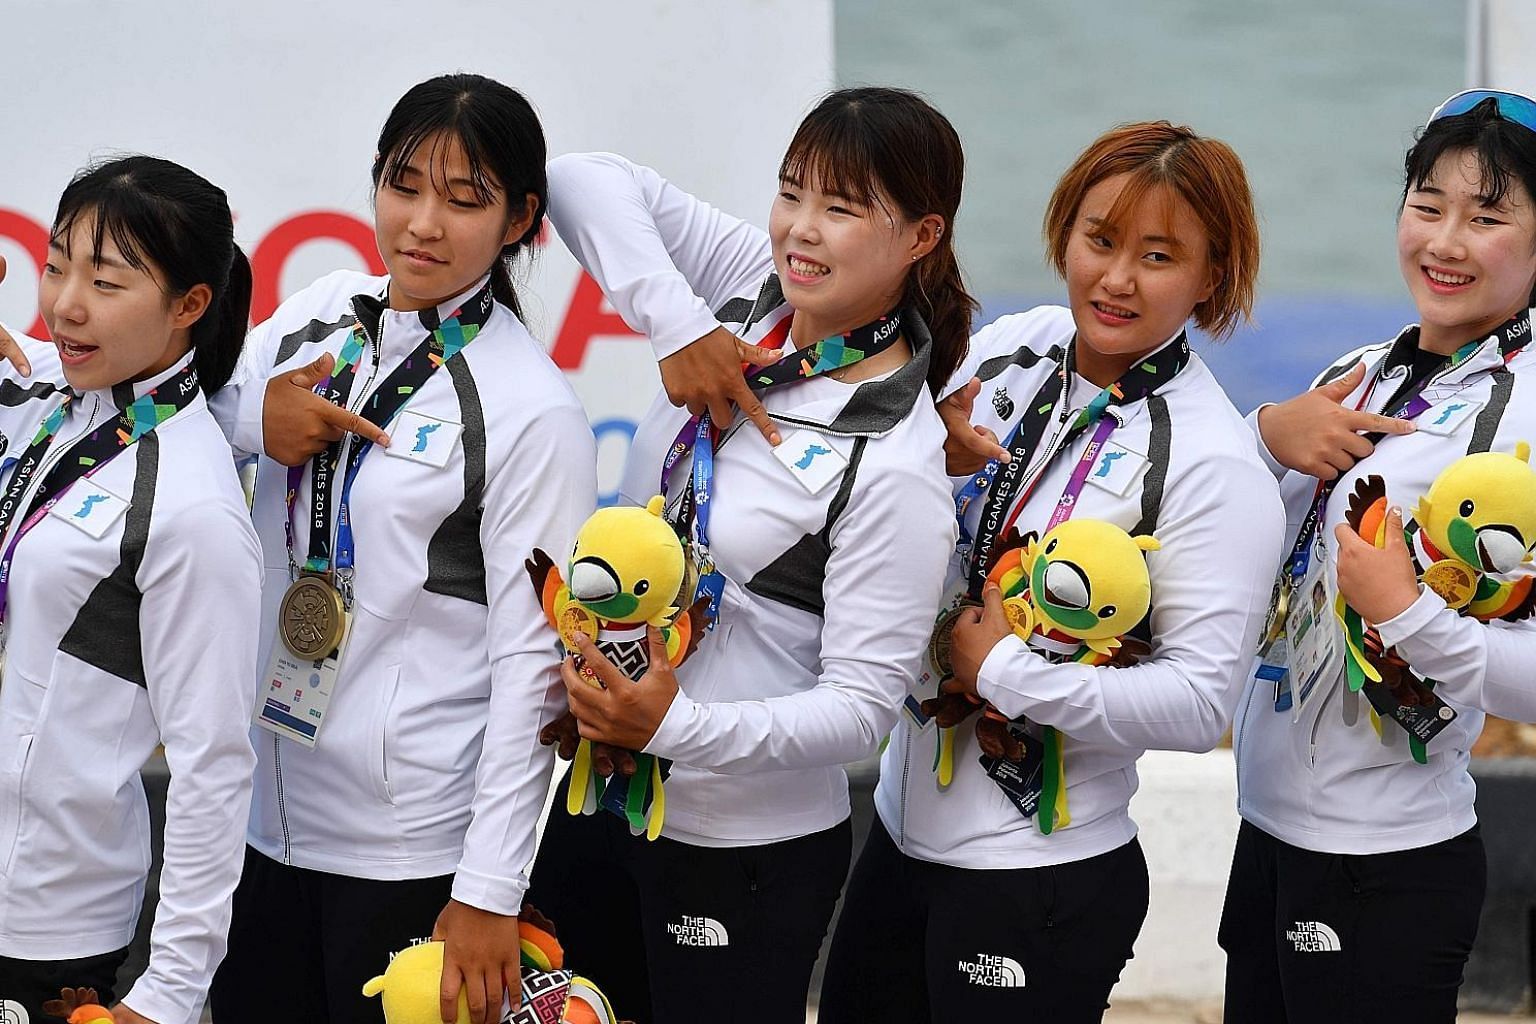 Members of the Unified Korea team pointing to the Korea Unification flag on their uniform, after receiving their bronzes during the medal ceremony for the women's 200m dragon boat final yesterday.